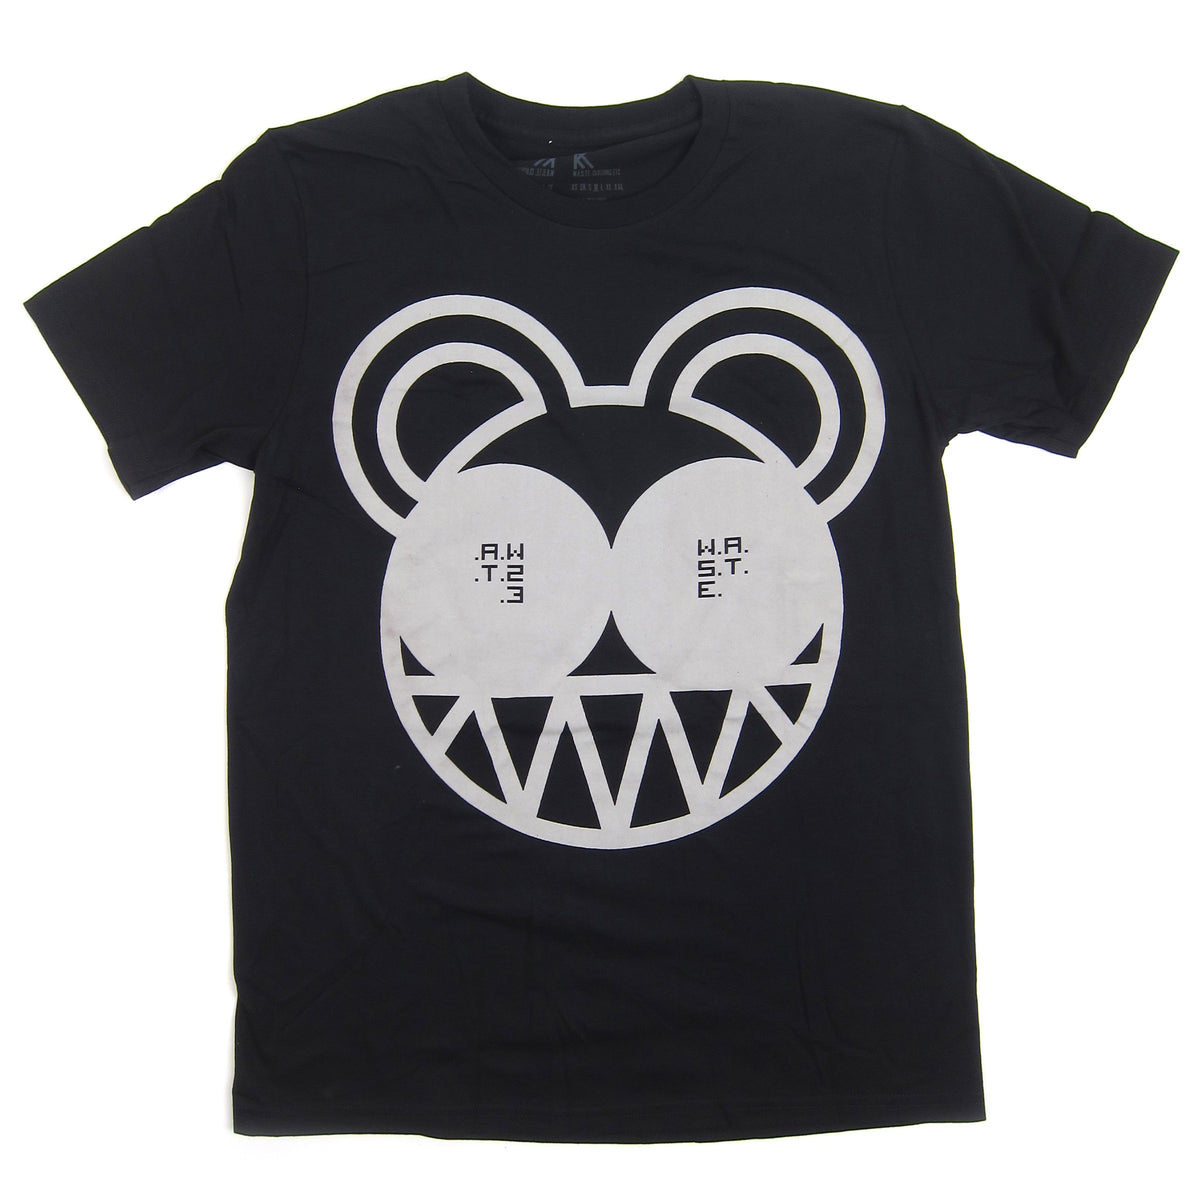 Radiohead: Bear Shirt - Black